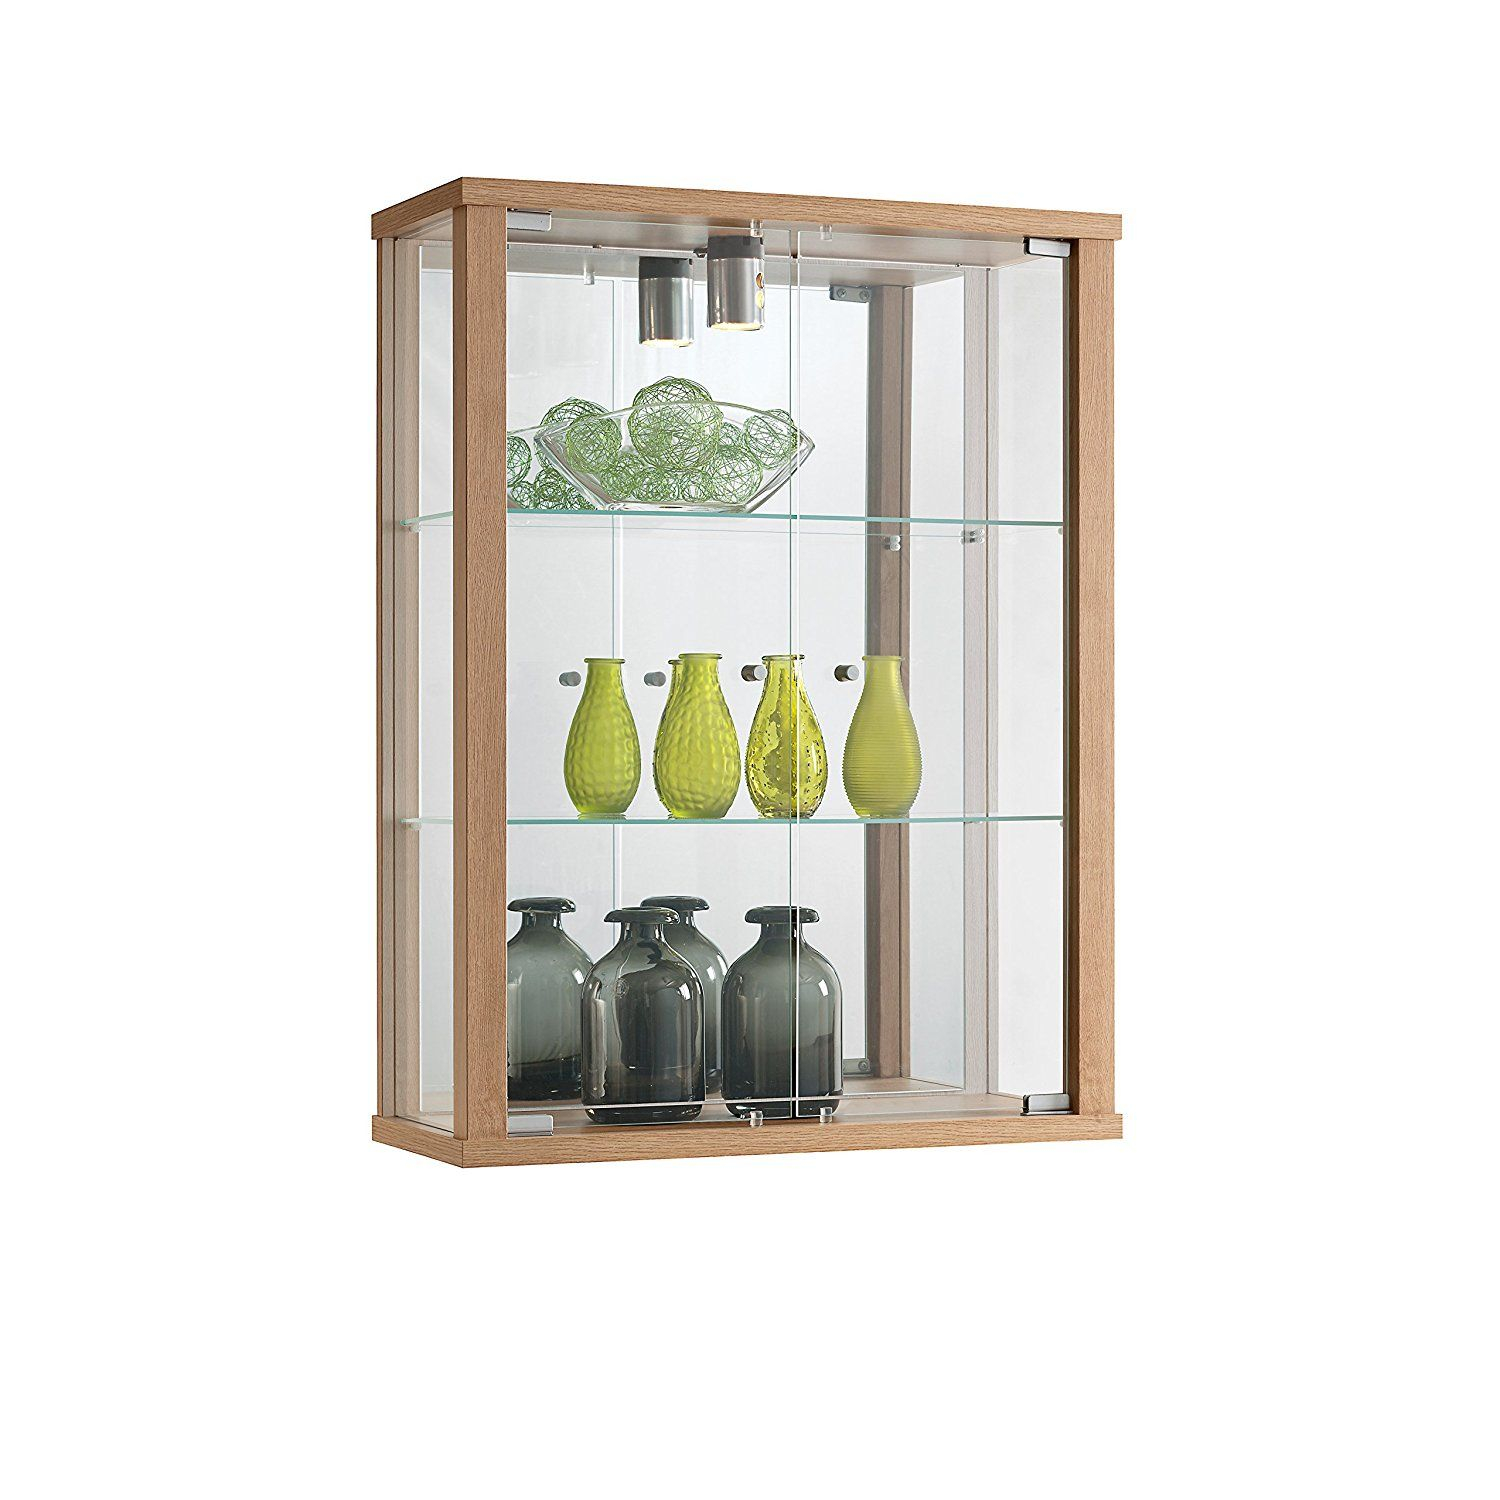 Wall Mounted Display Case Oak Wall Mounted Display Cabinet Display Cabinet